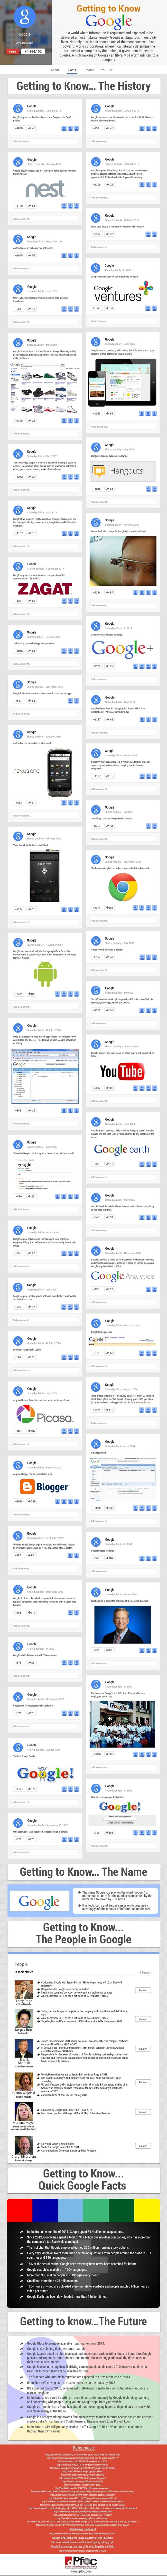 Getting to Know #Google - #infographic